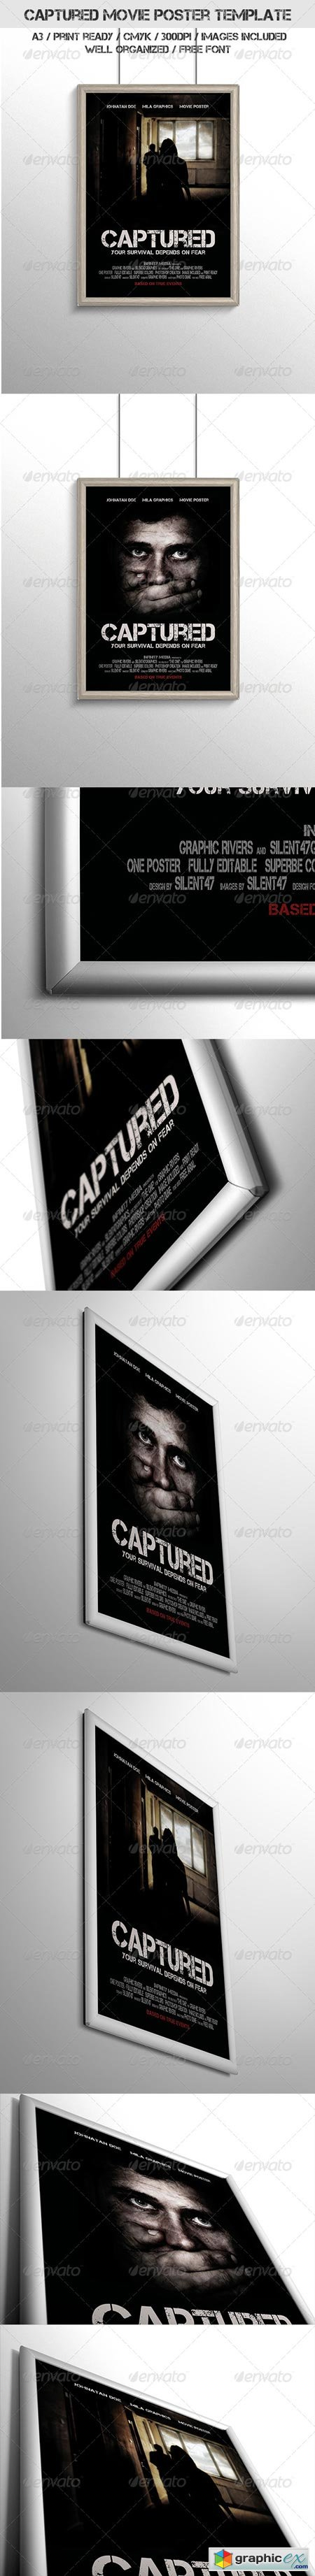 Captured Movie Poster Template 6783007